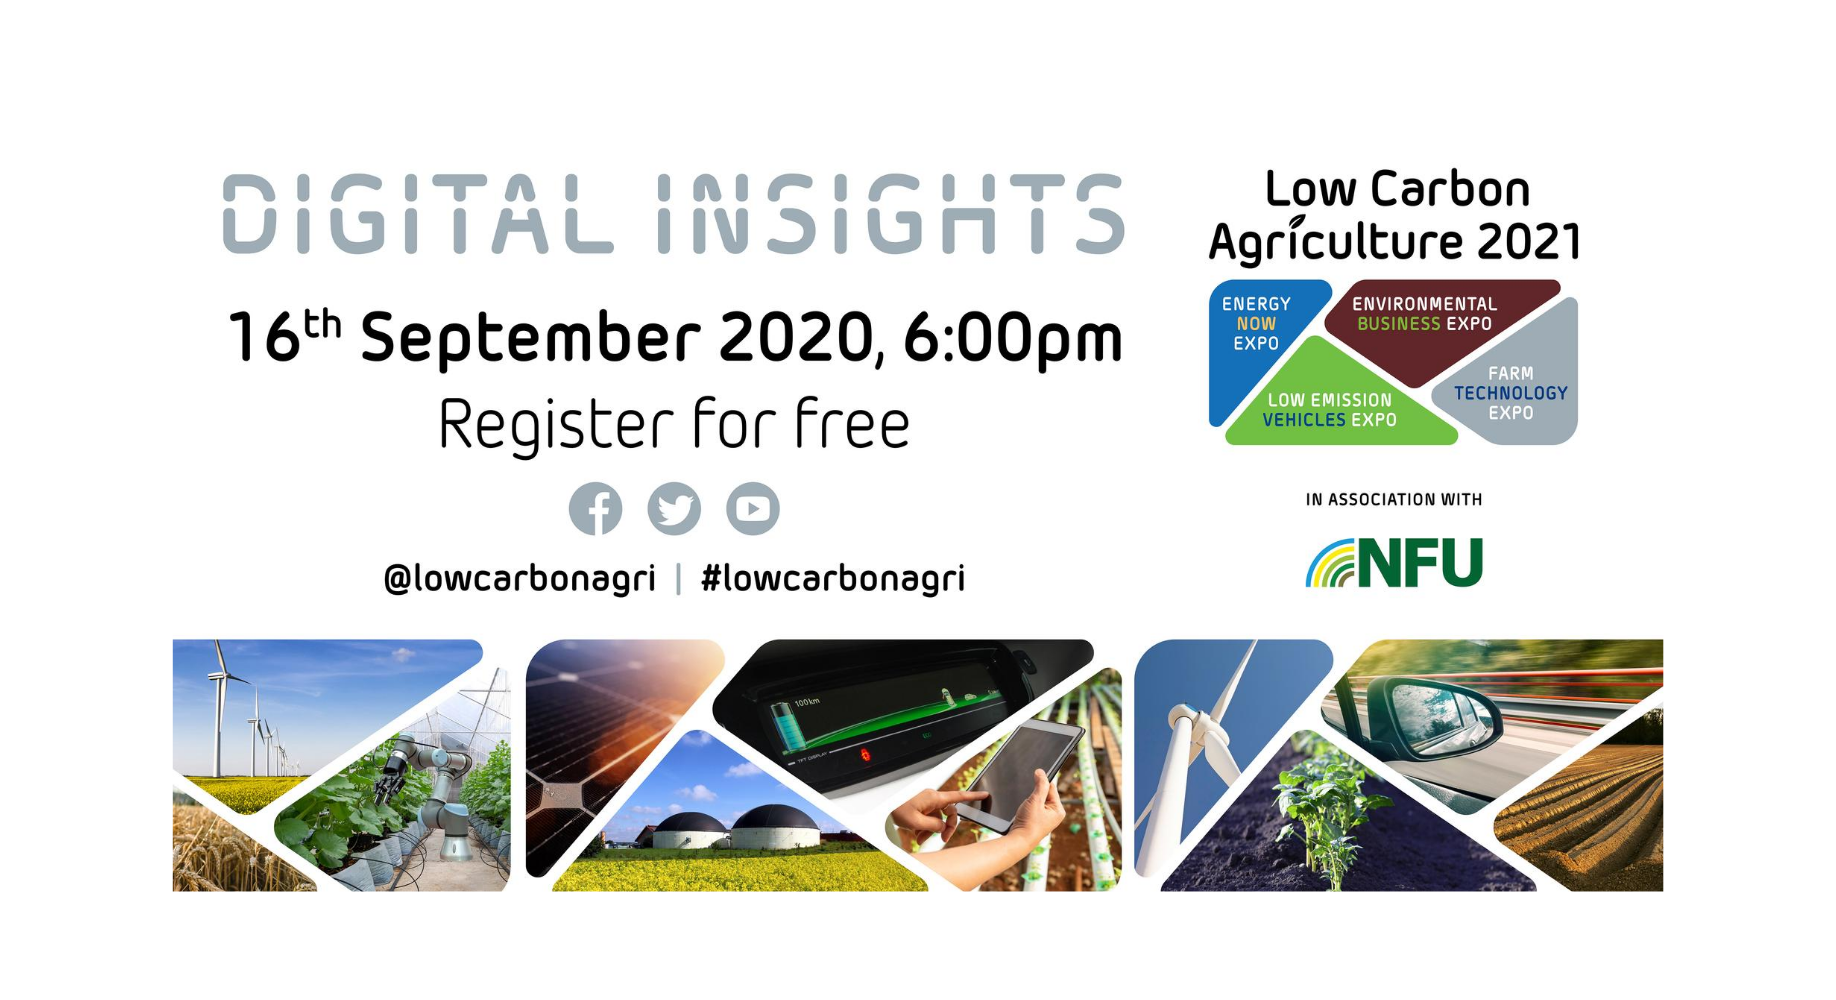 Low Carbon Agriculture show launches Digital Insights webinars